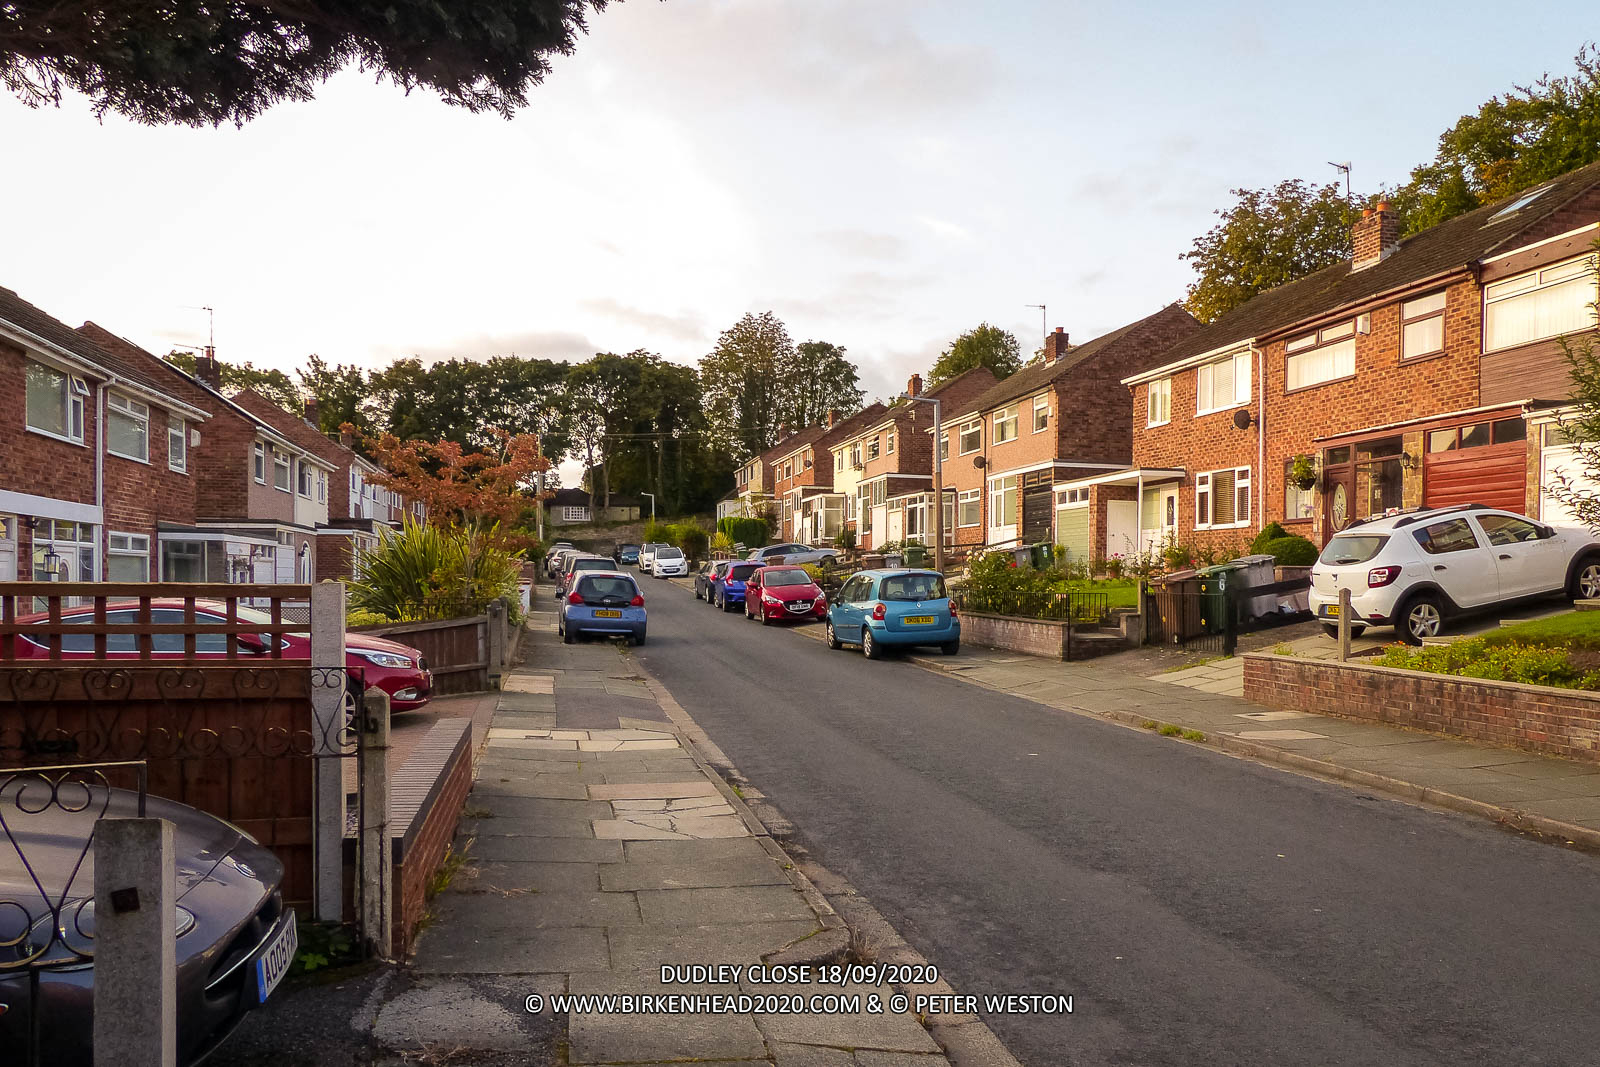 Dudley Close